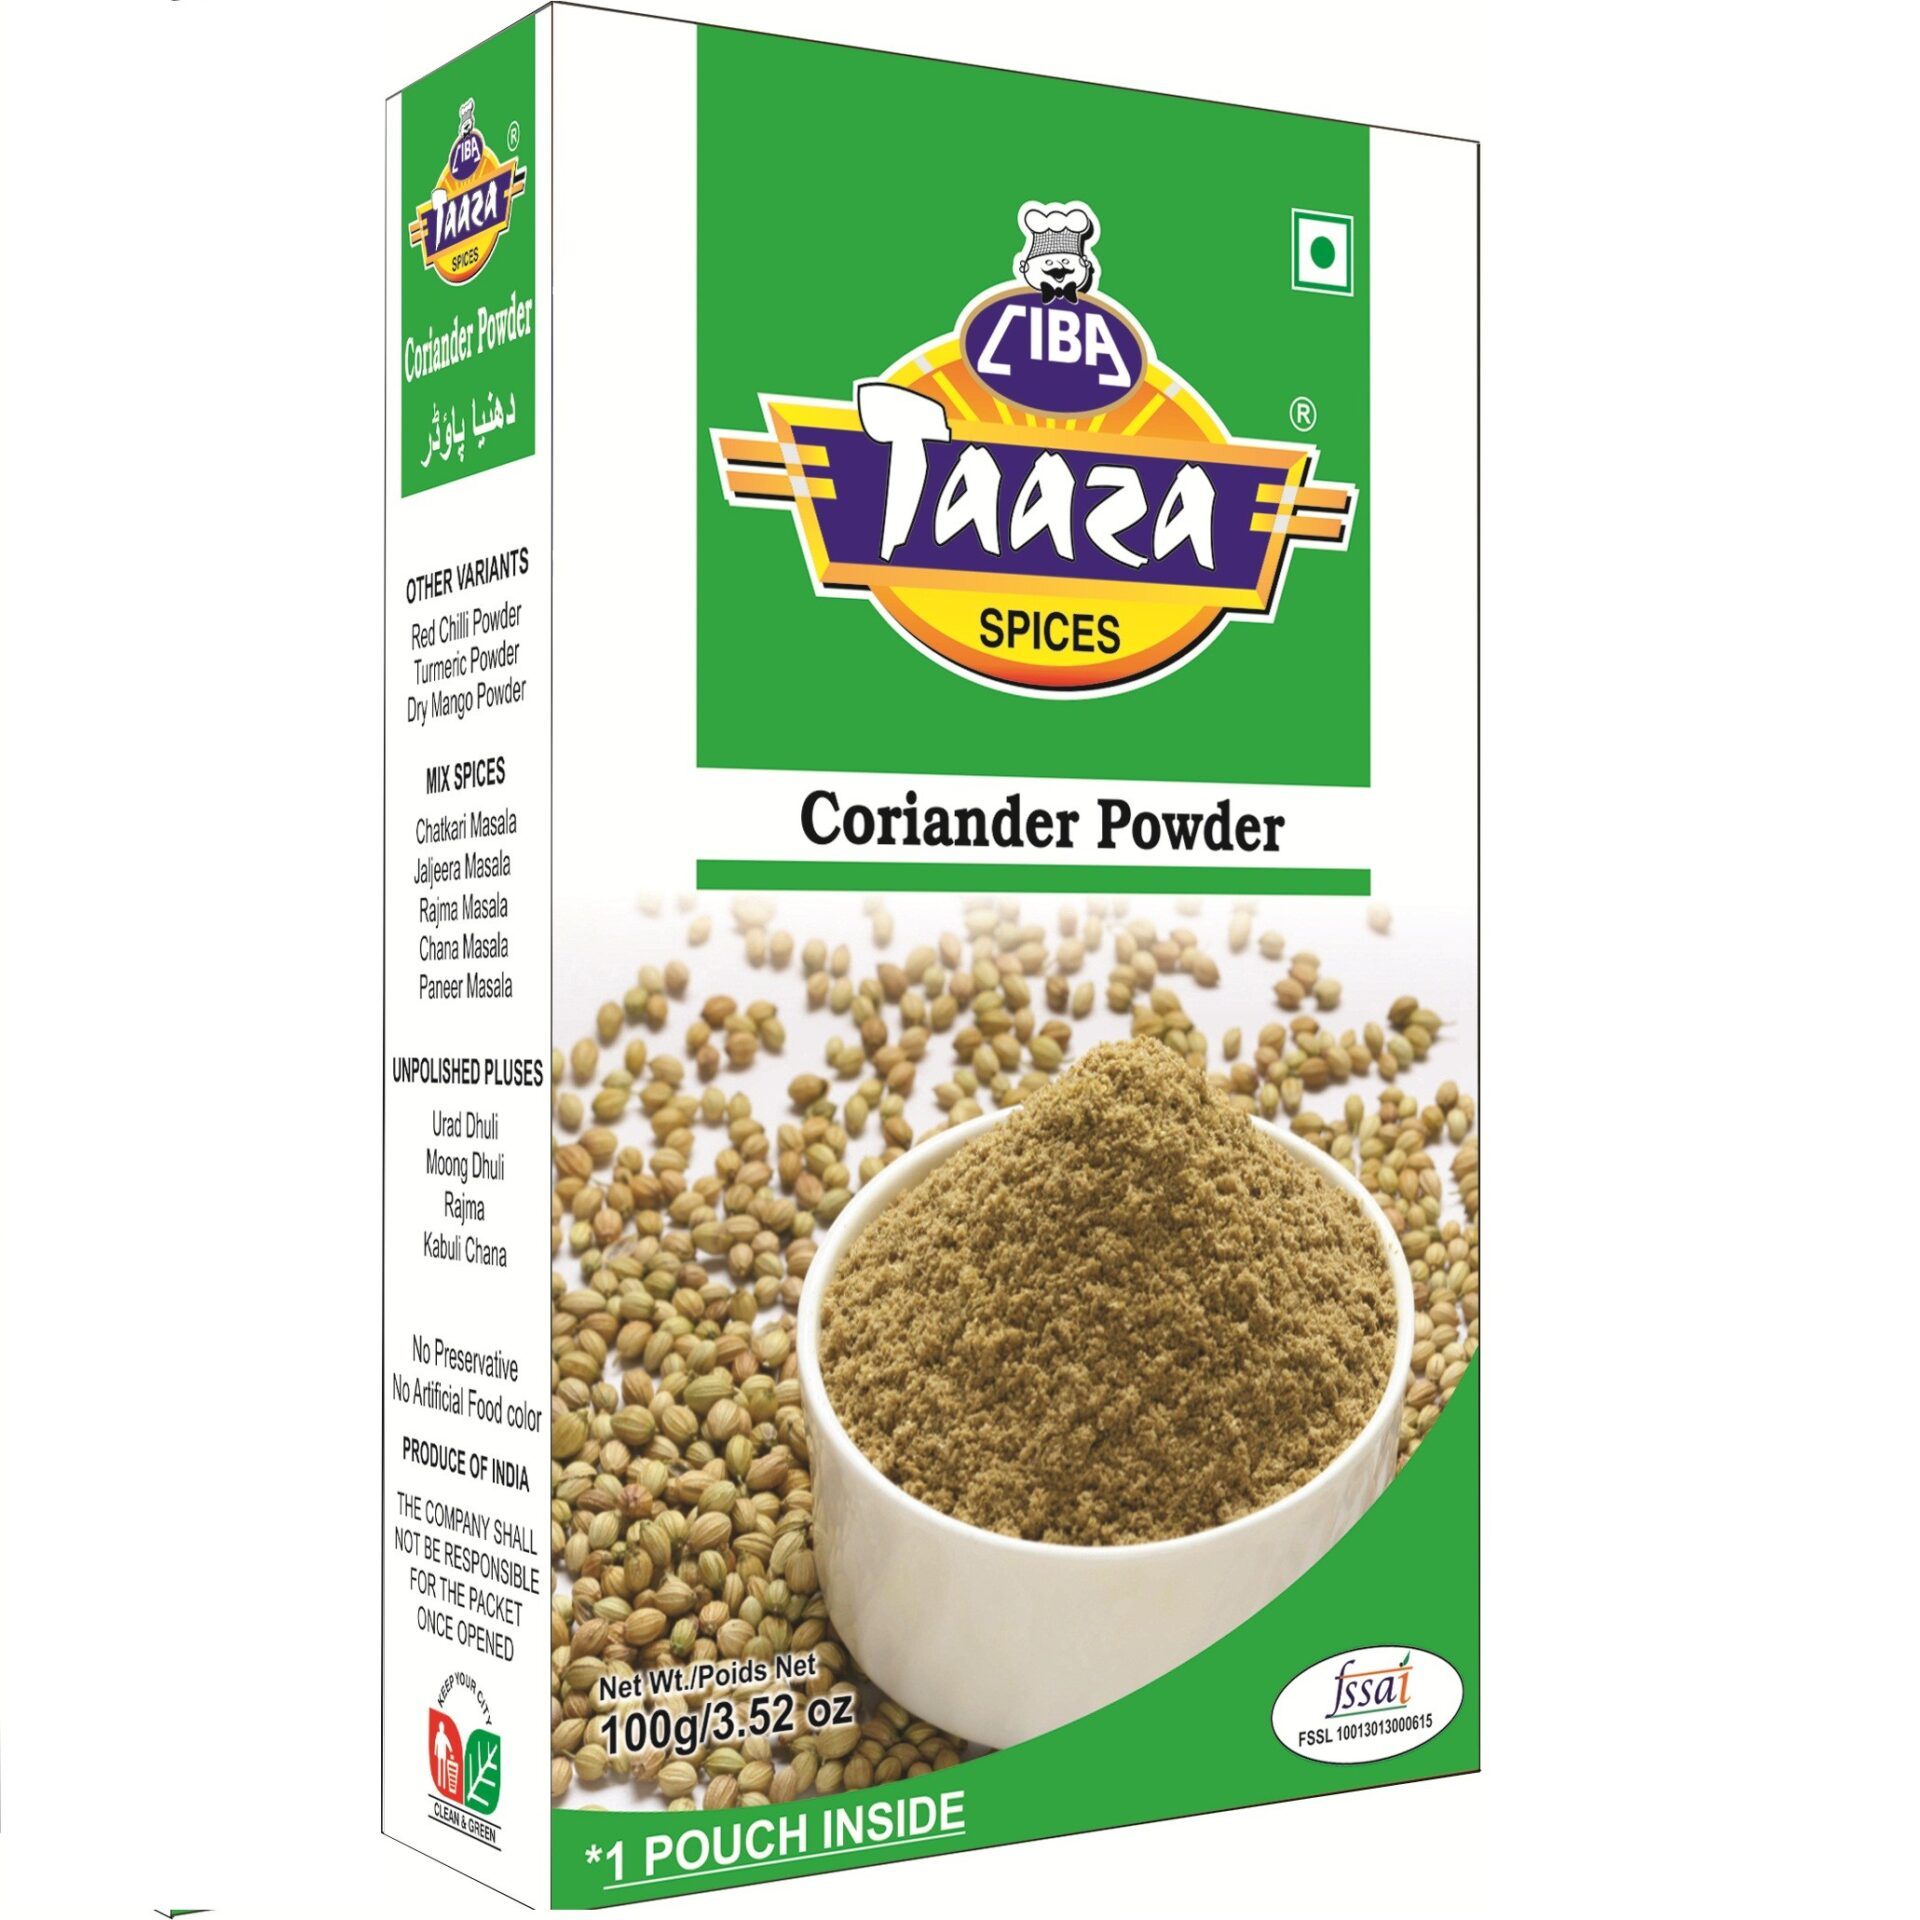 Coriander Powder (Dhania Powder) 100g